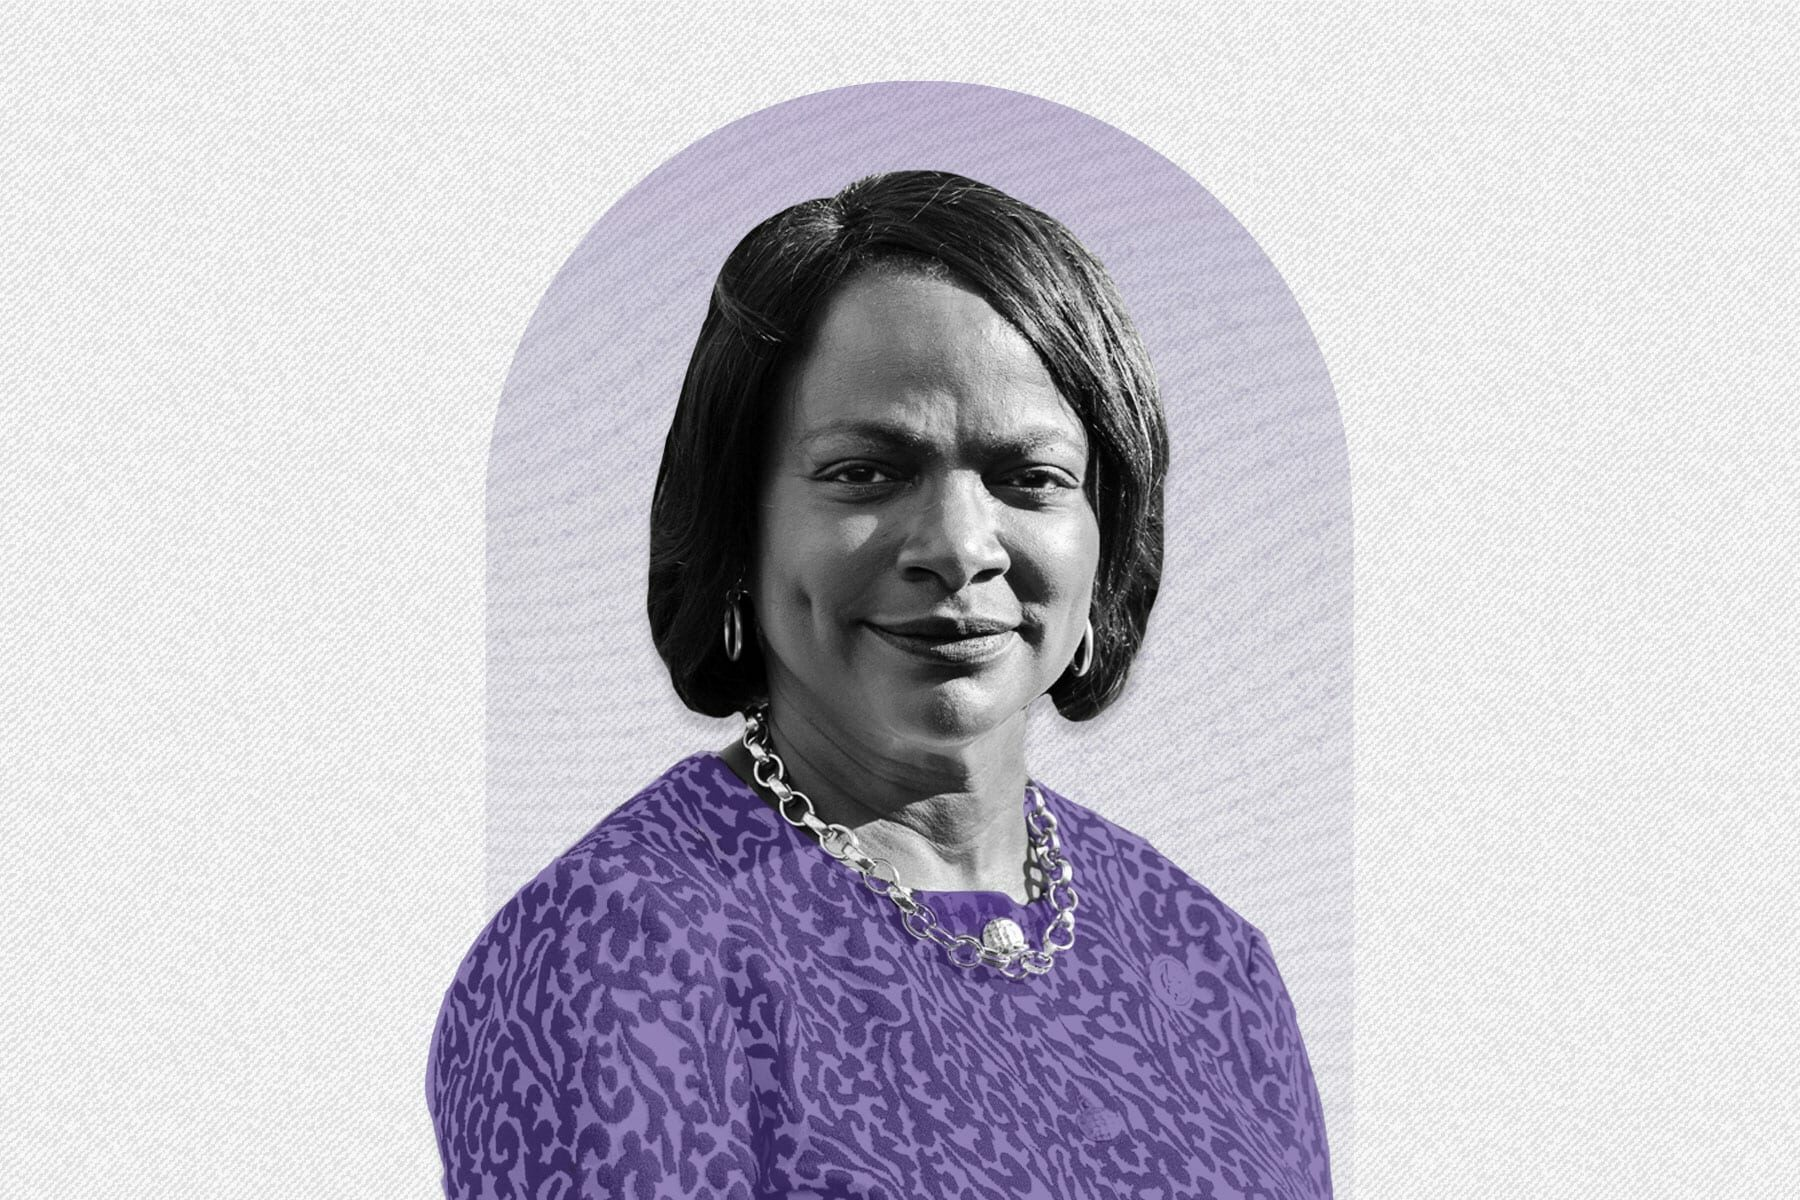 A 19th portrait of Val Demings.